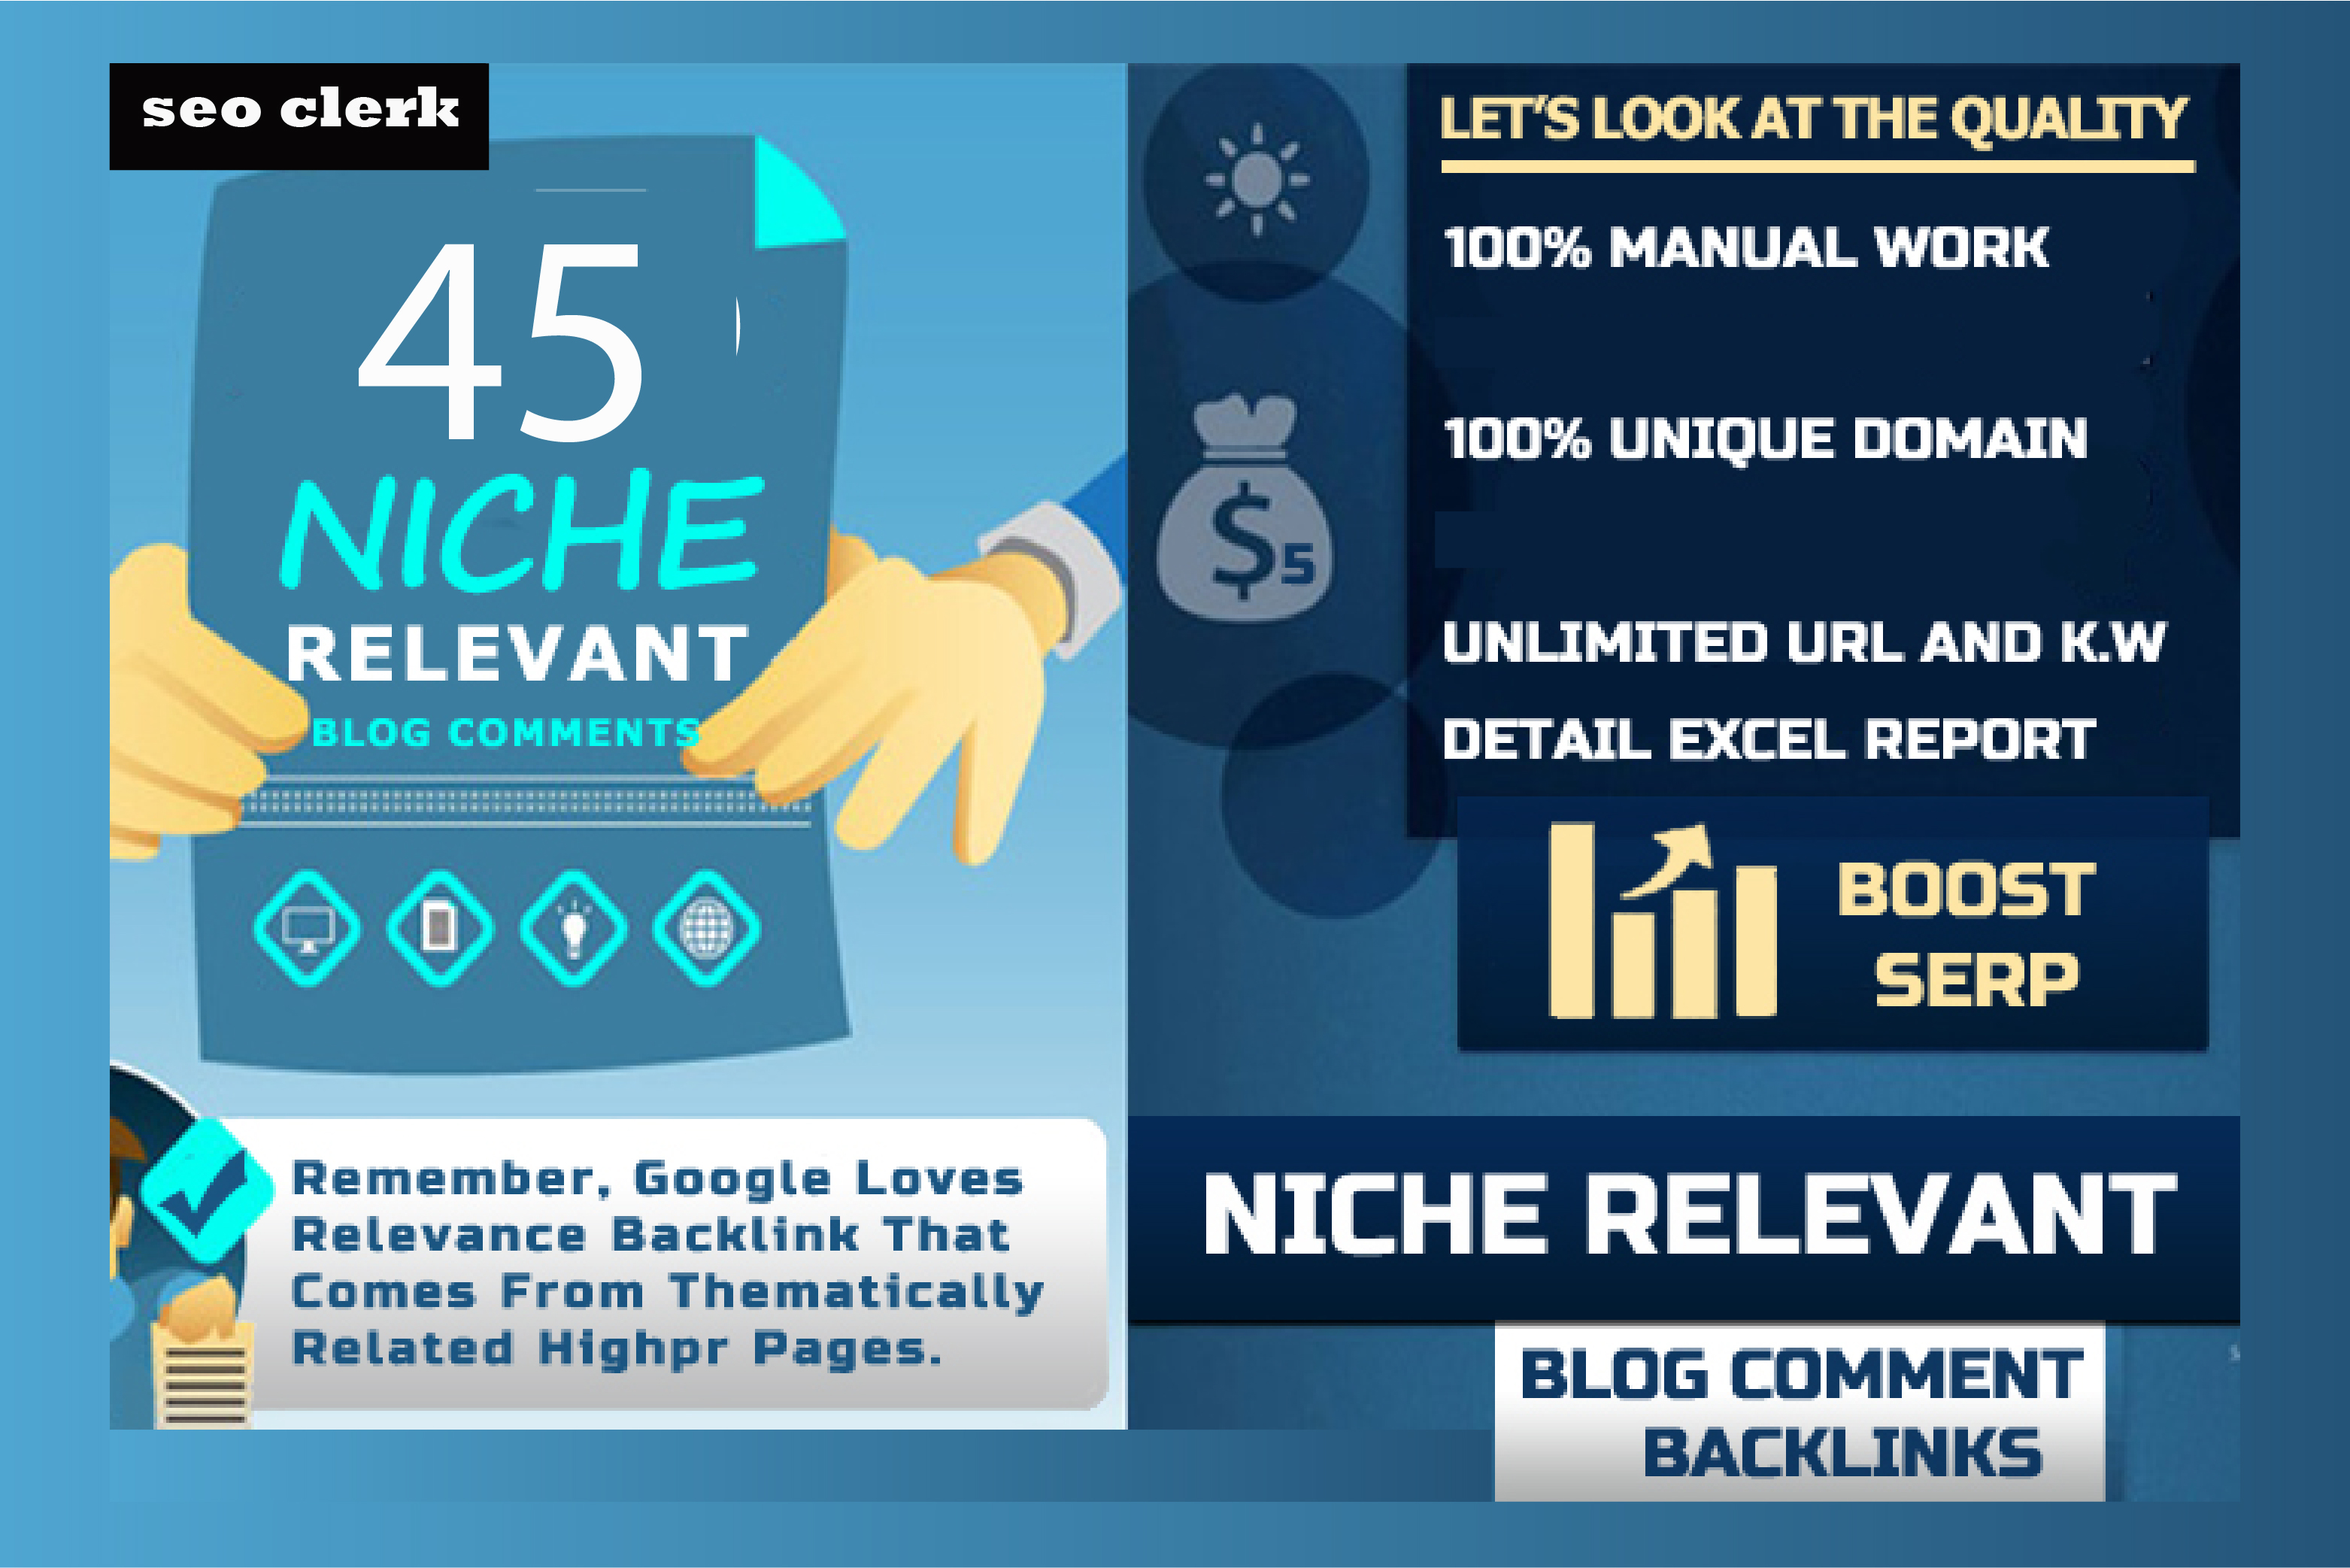 I will do 45 niche relevant backlinks as your website niche